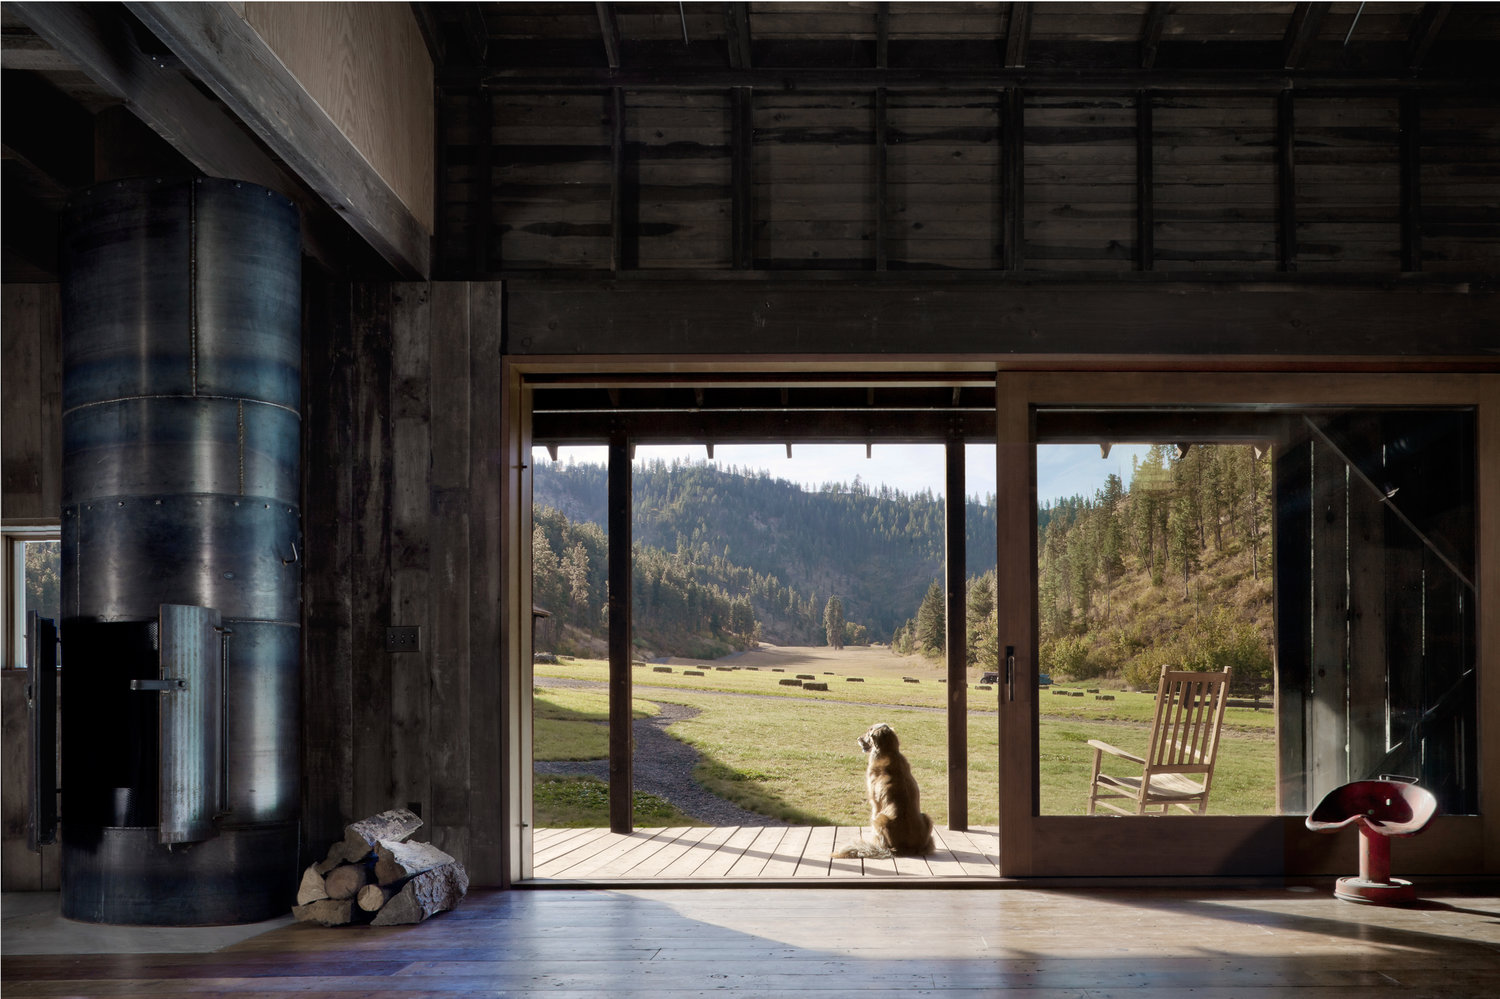 The wooden porch ensures a gradual transition between the indoor and outdoor areas